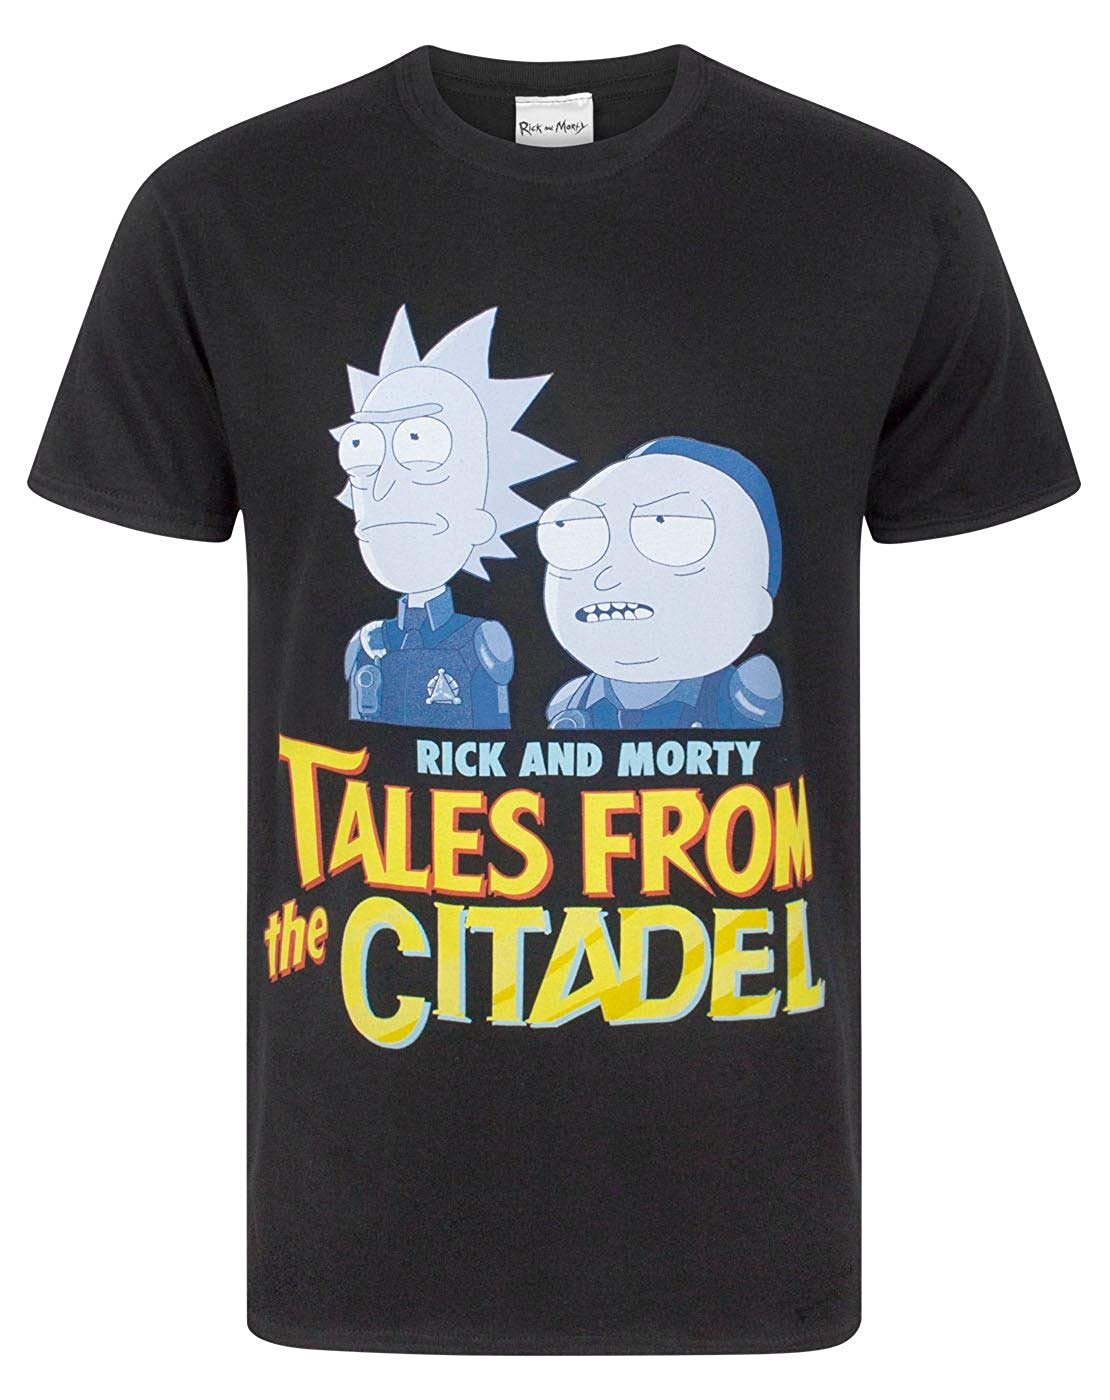 Tričko Rick and Morty Tales Of The Citadel